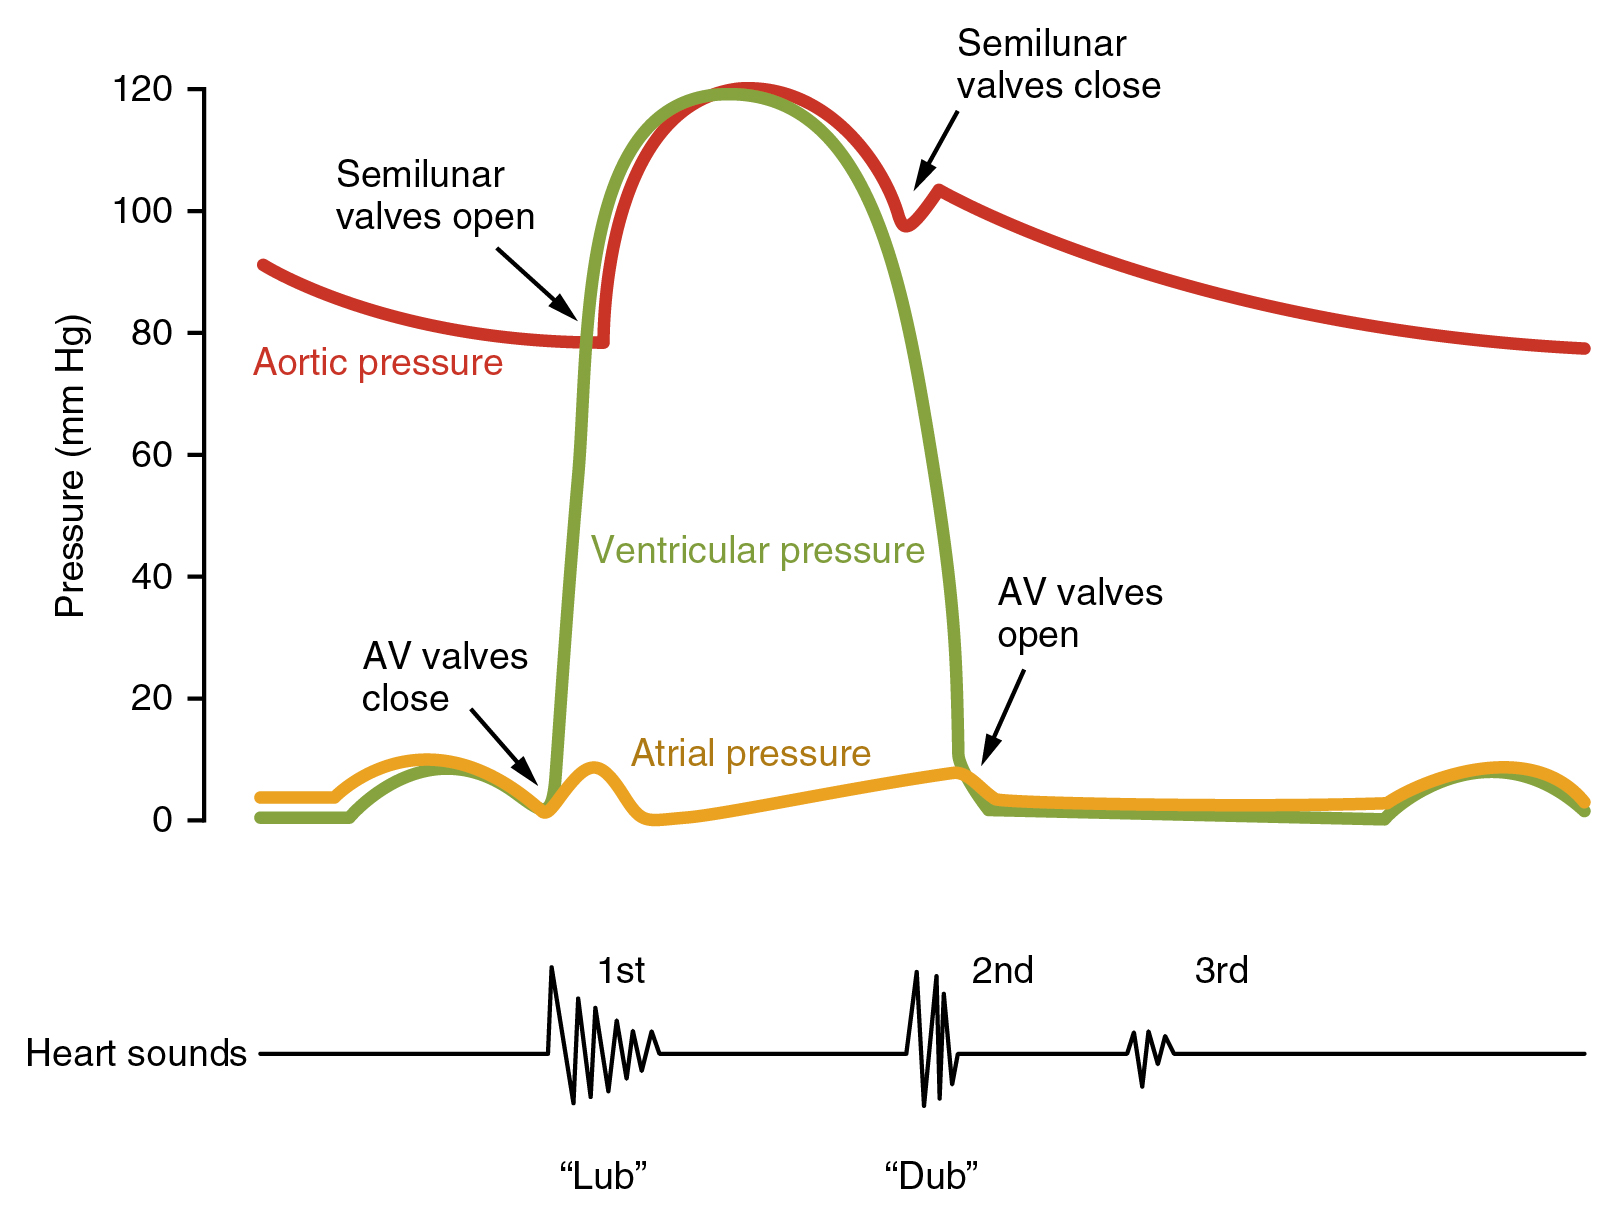 This image shows a graph of the blood pressure with the different stages labeled. Under the graph, a line shows the different sounds made by the beating heart.